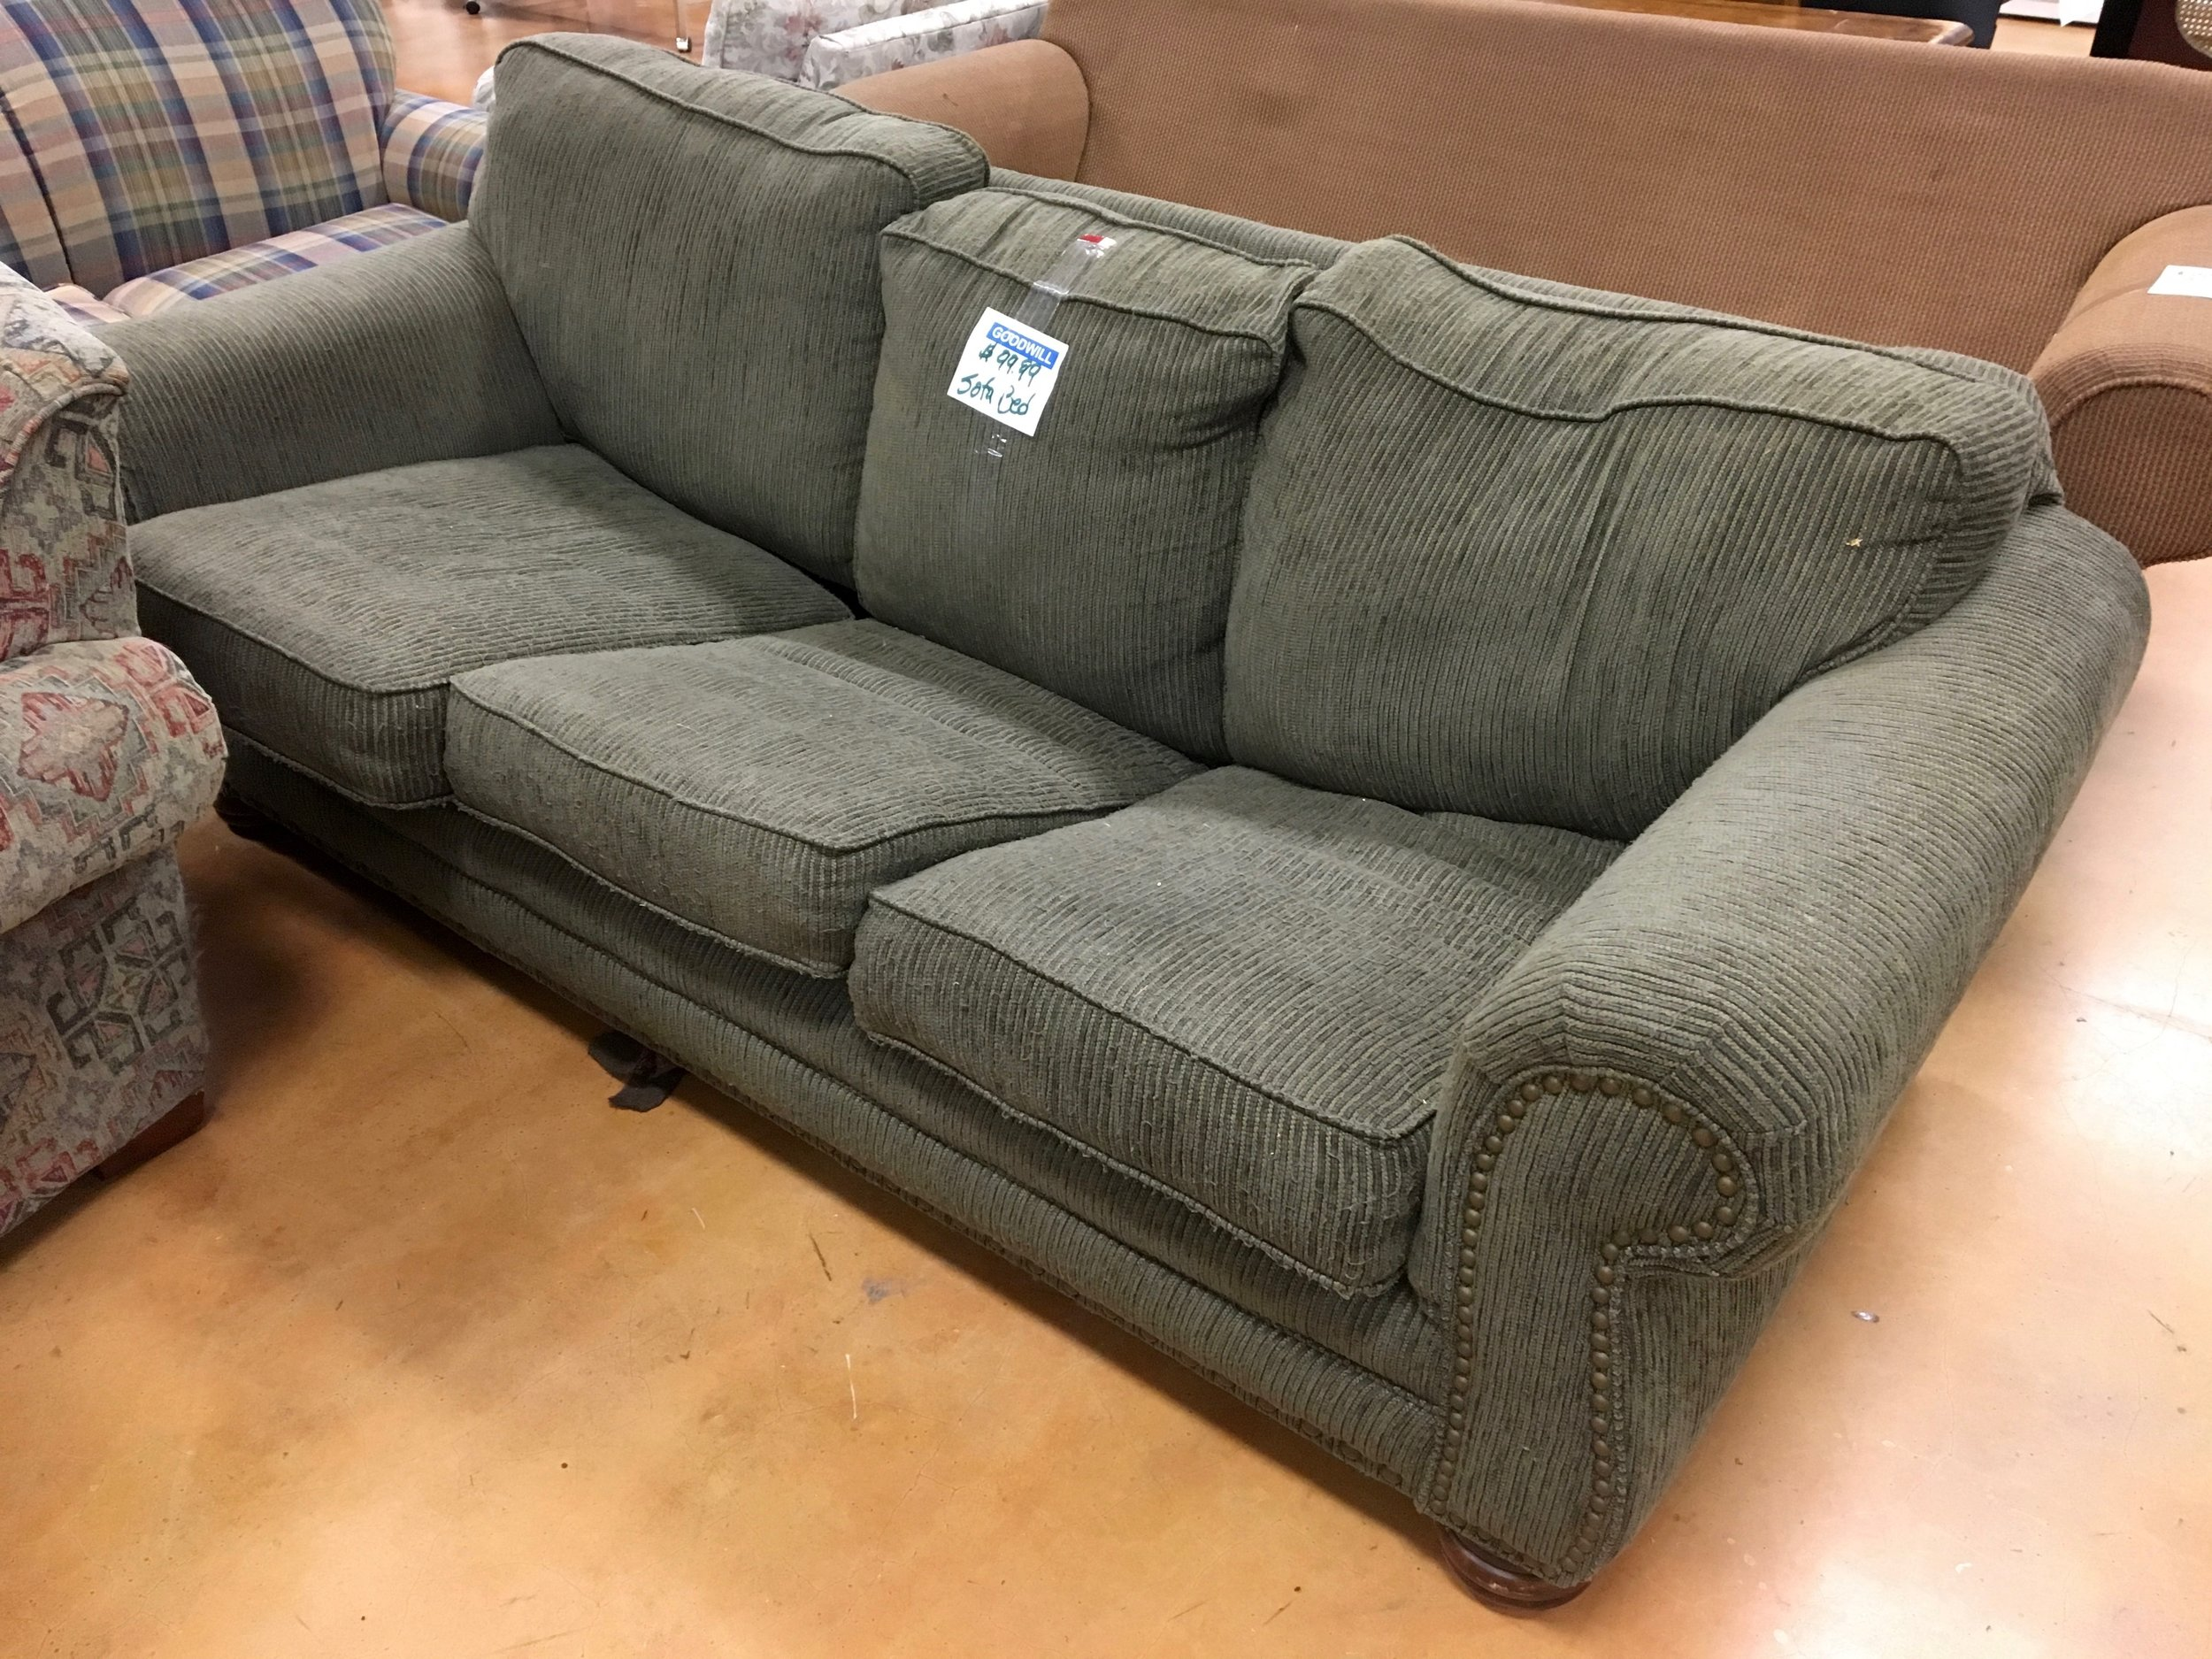 The sofa for sale at Goodwill on Tulane but without the mattress.